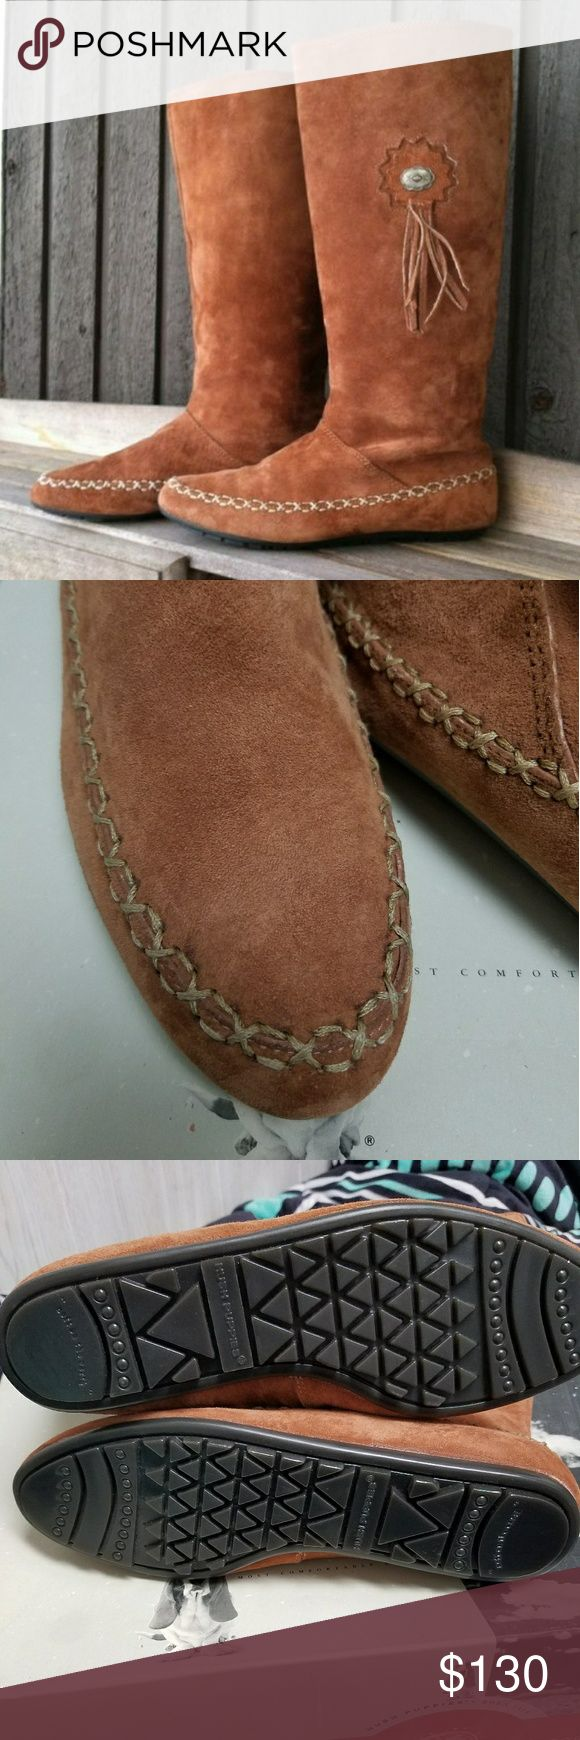 Leather moccasin boots Genuine leather and suede moccasin boots. Brand new with box. Sat so long that interior on one boot is peeling slightly but nothing major. These just need someone to show them off. Original price almost $200! Hush Puppies Shoes Moccasins